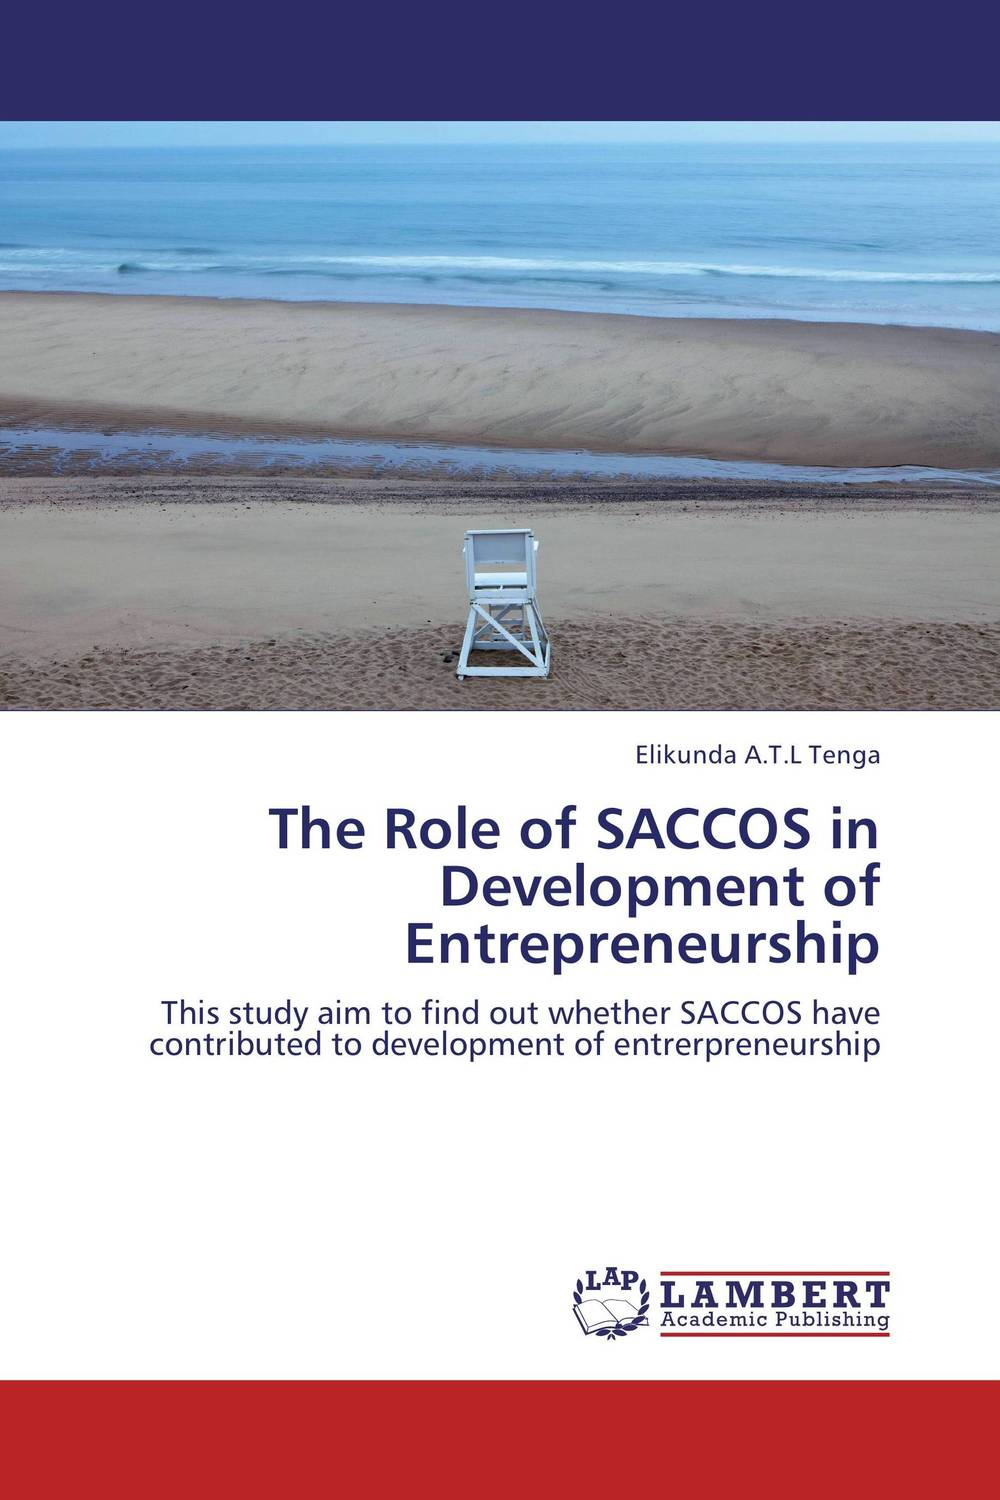 The Role of SACCOS in Development of Entrepreneurship ram charan owning up the 14 questions every board member needs to ask